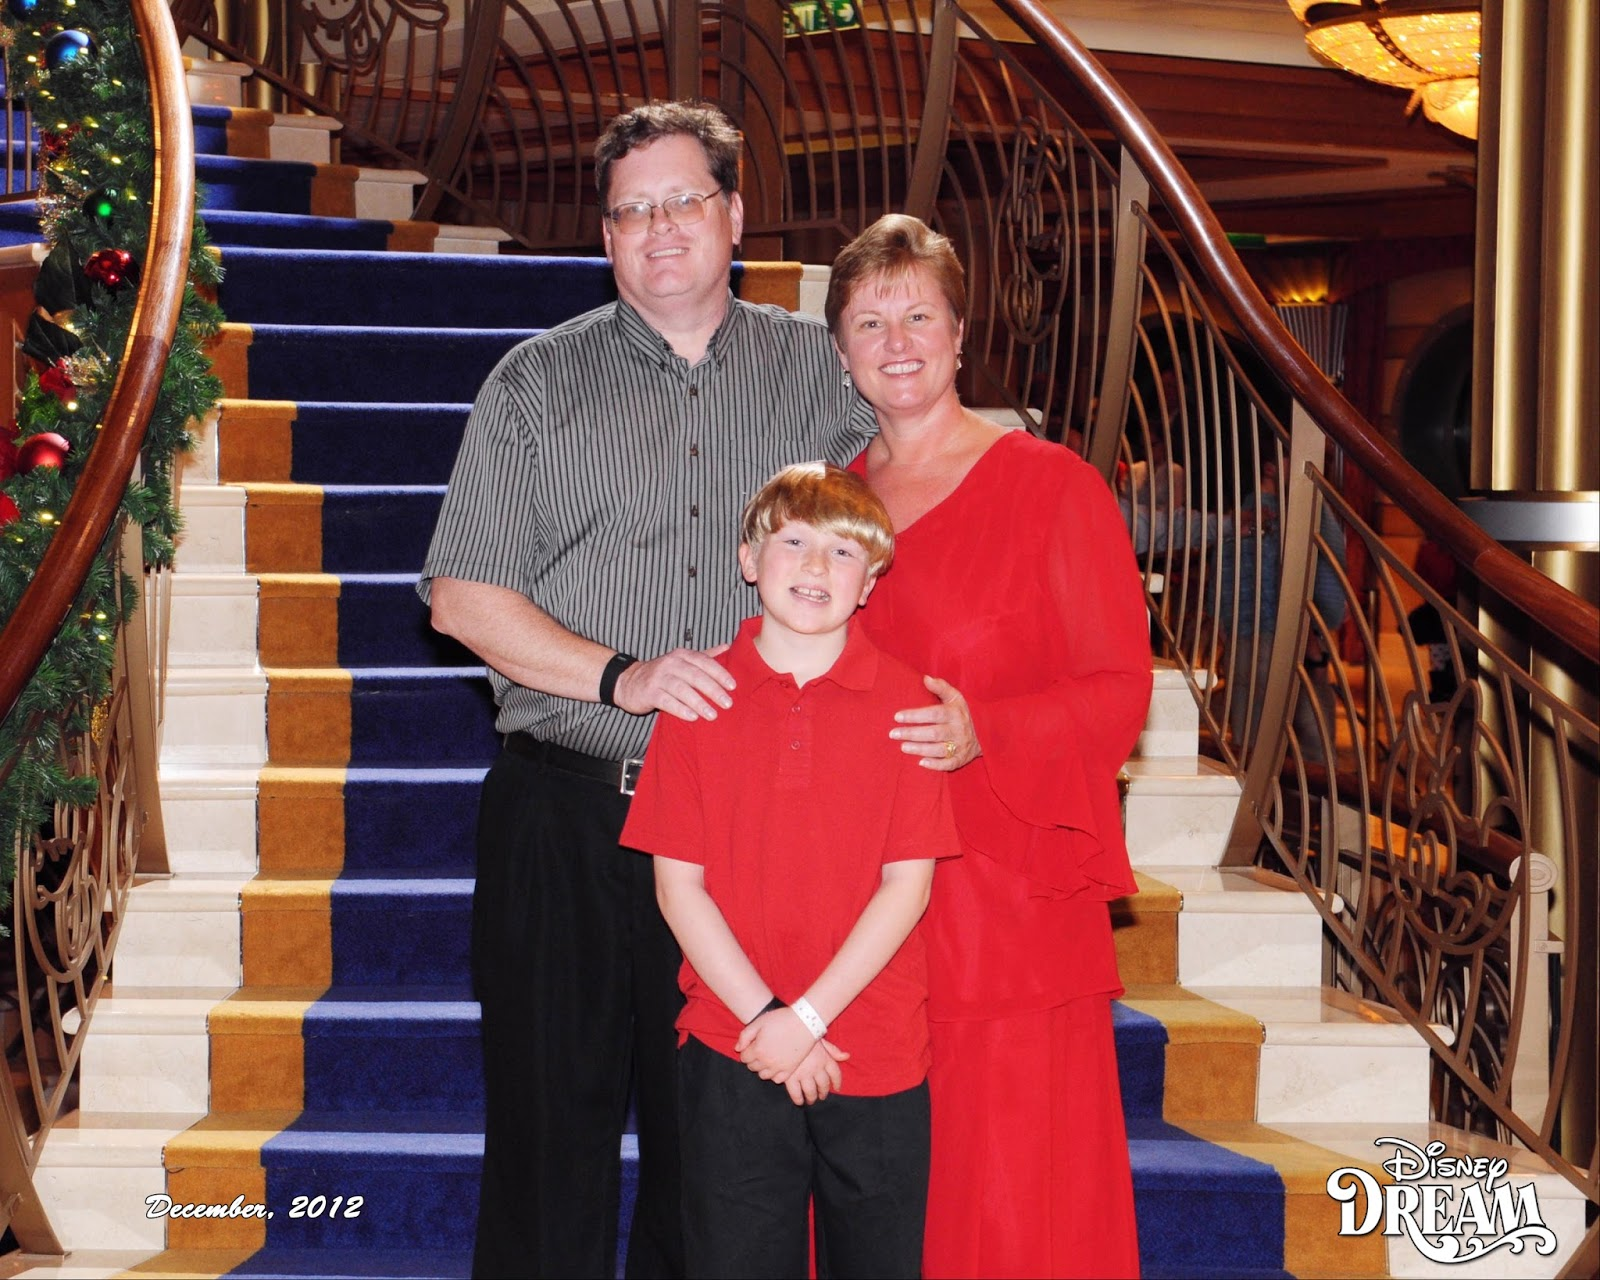 Williams Family Disney Cruise Line Changes Dinner Dress Code